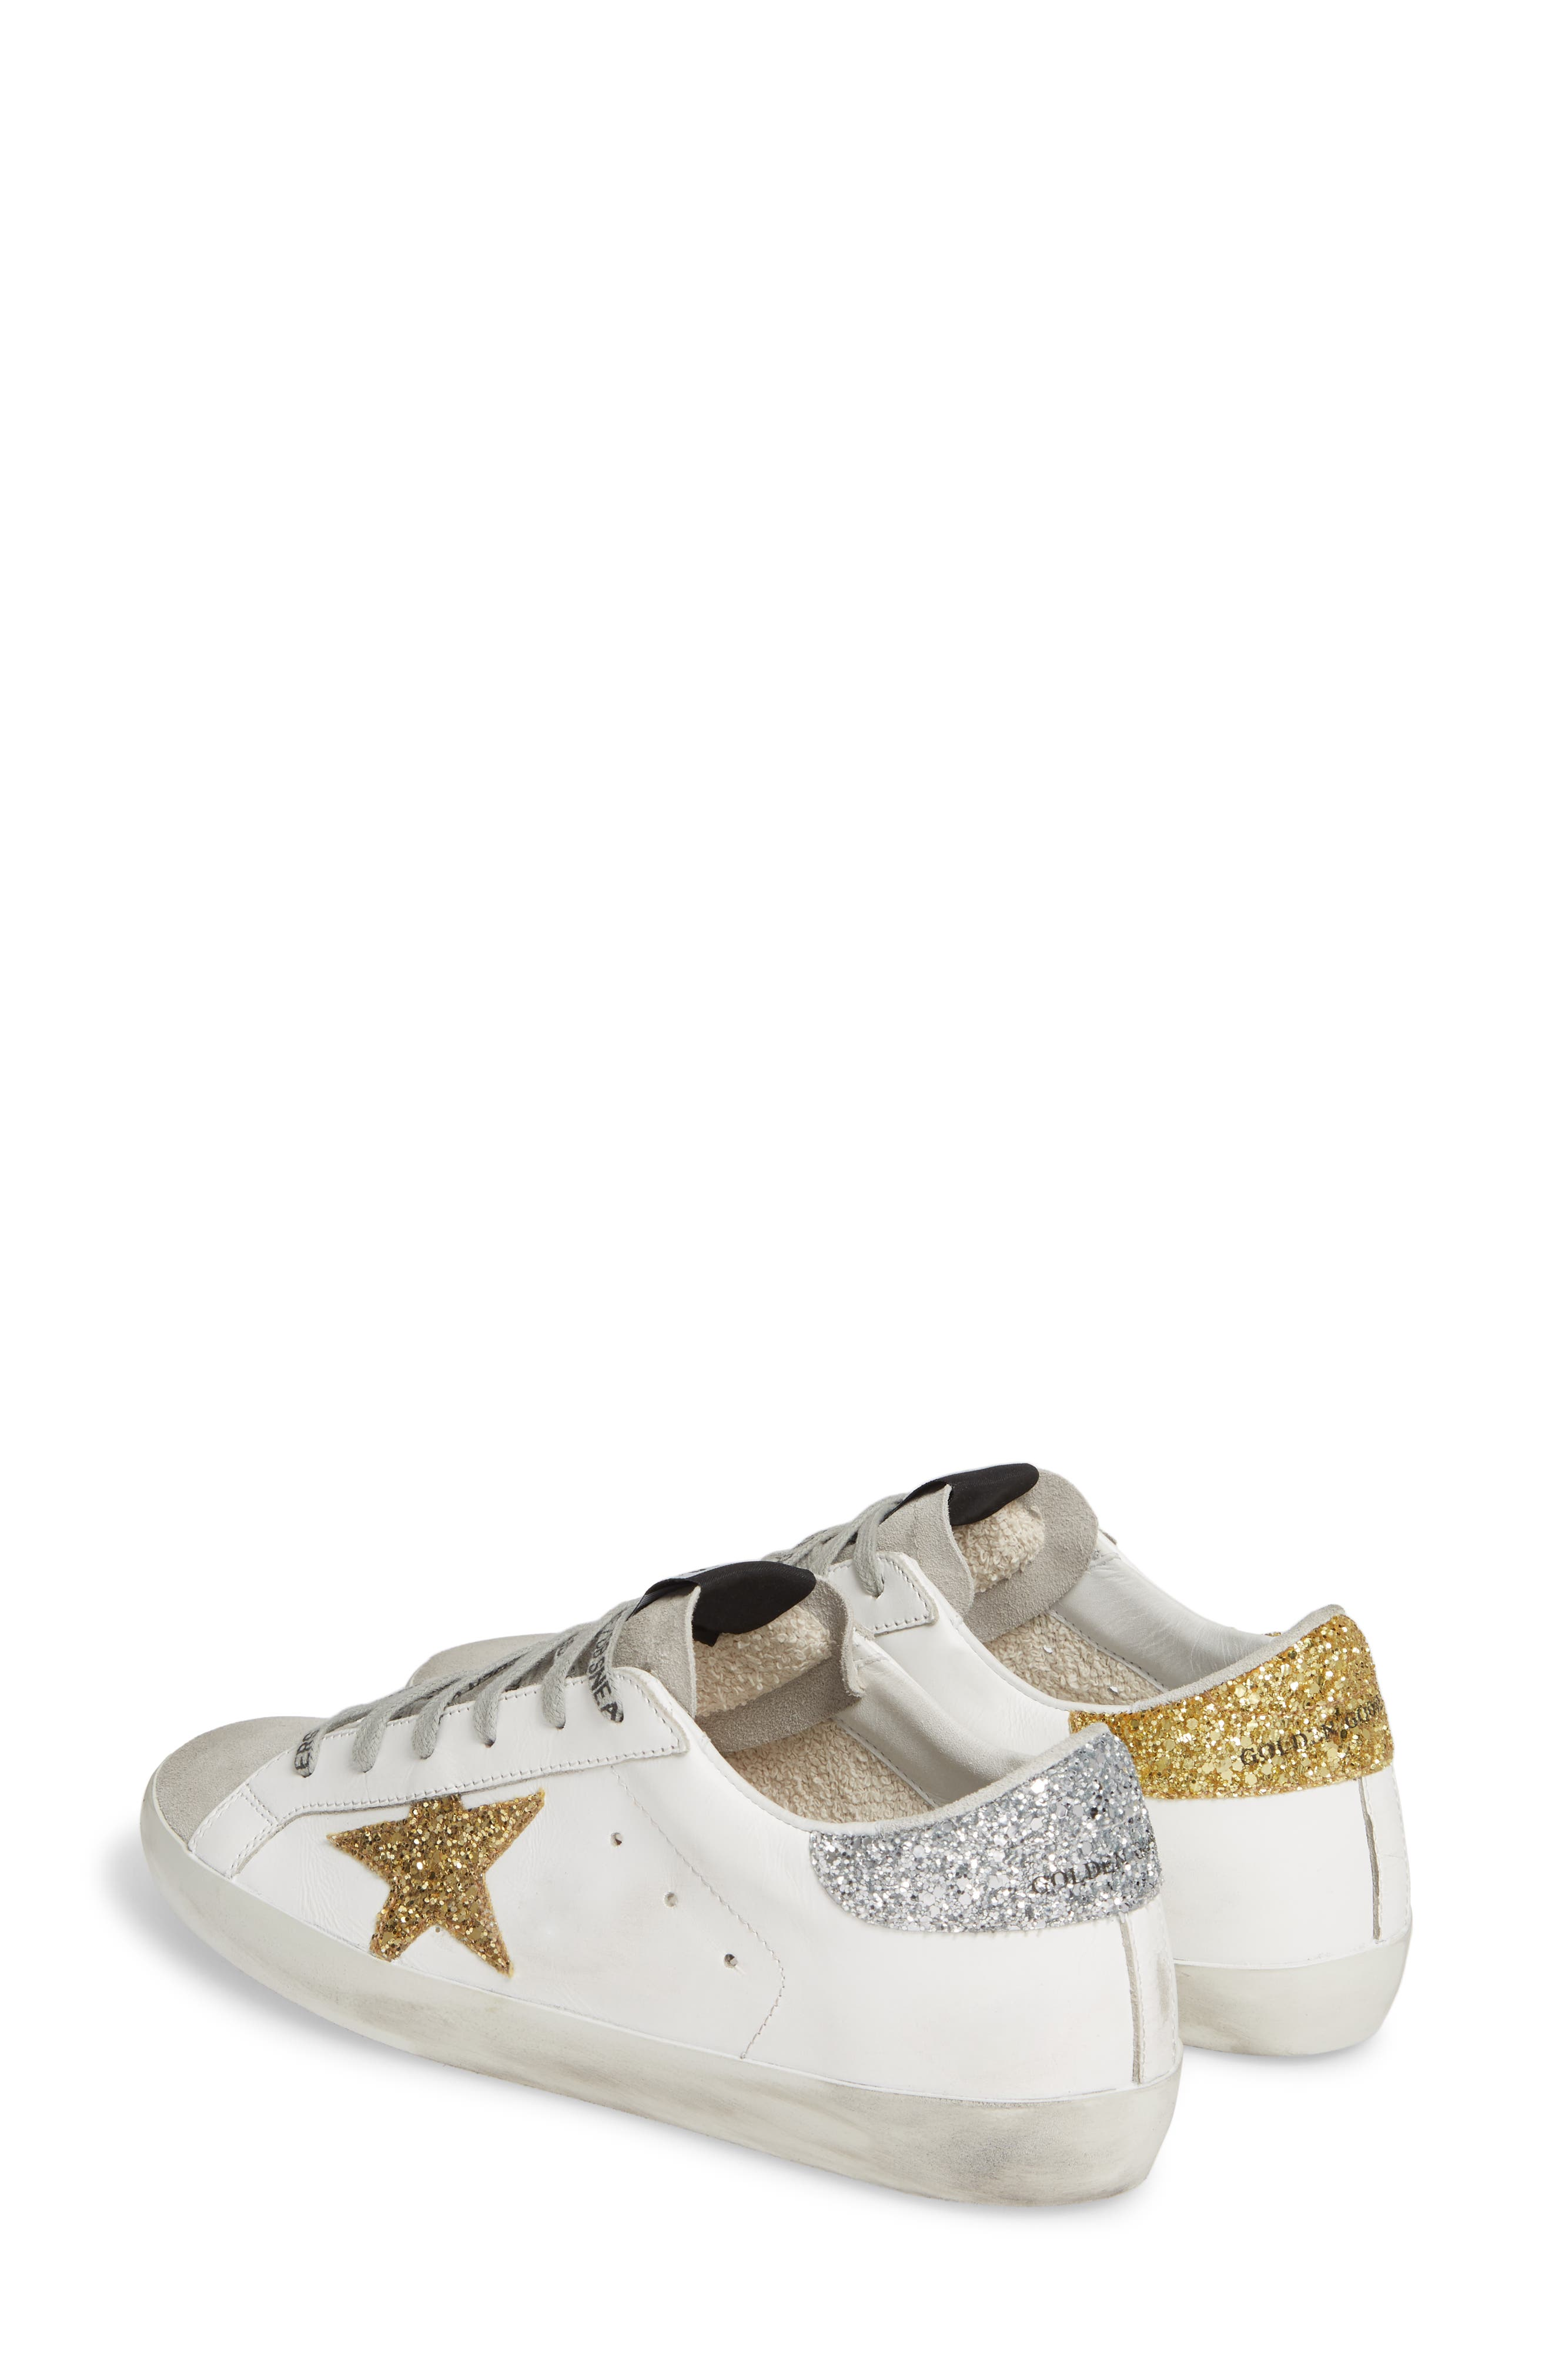 Superstar Low Top Sneaker,                             Alternate thumbnail 3, color,                             WHITE/ GOLD/ SILVER